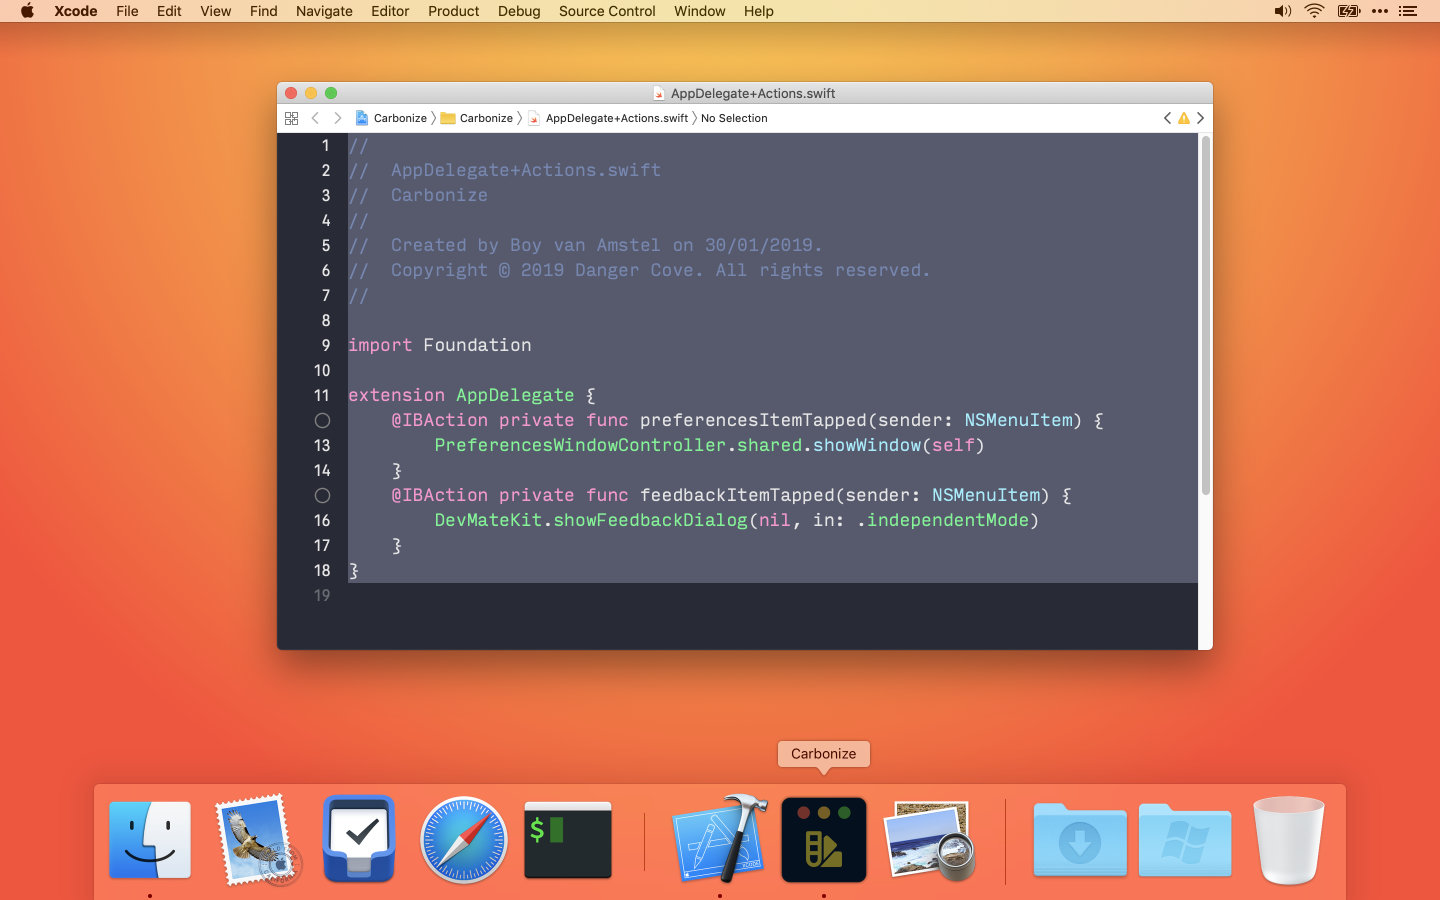 A desktop screenshot showing you can drag code onto the Dock icon